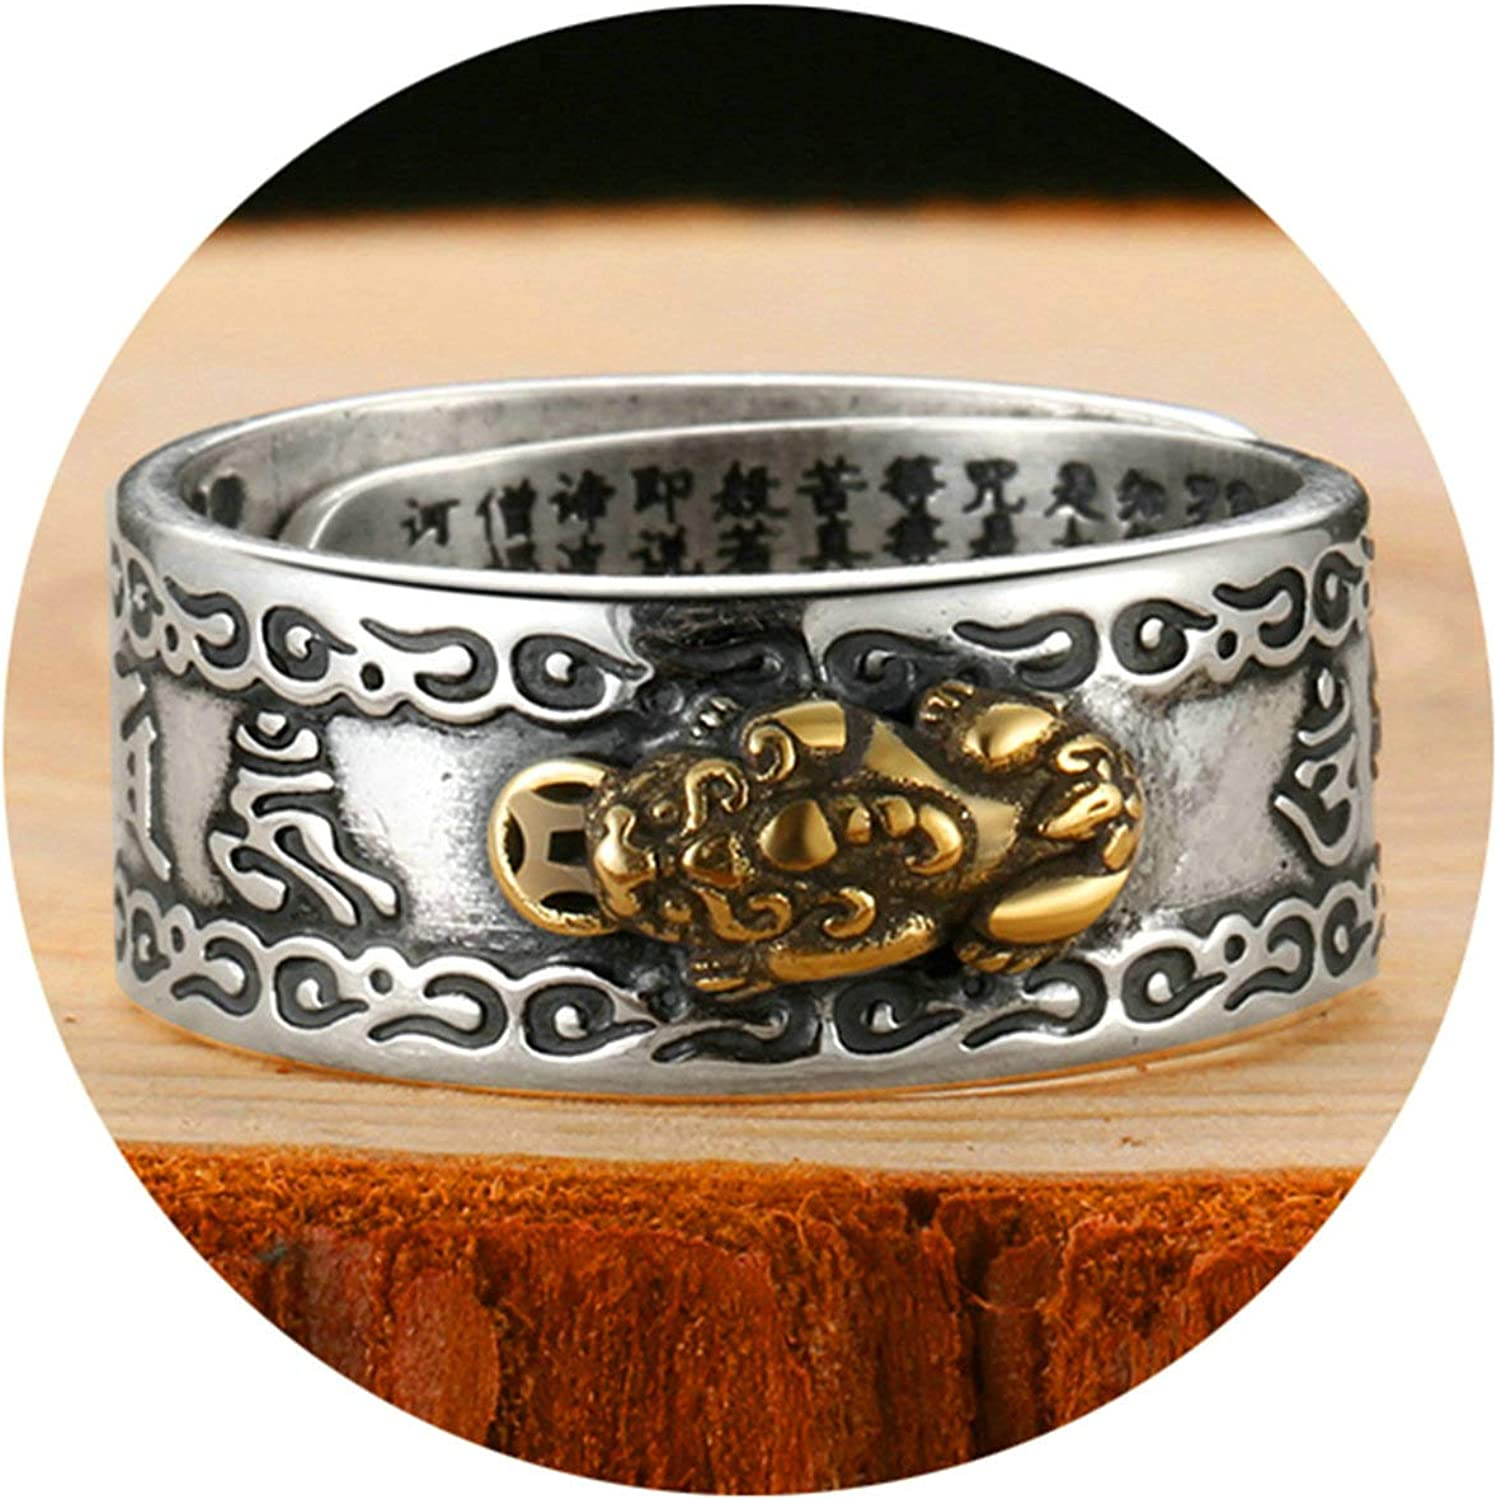 AMDXD Jewellery S925 Sterling Silver Men Wedding Bands Buddhism Heart Sutra Silver Black Rings Size 8